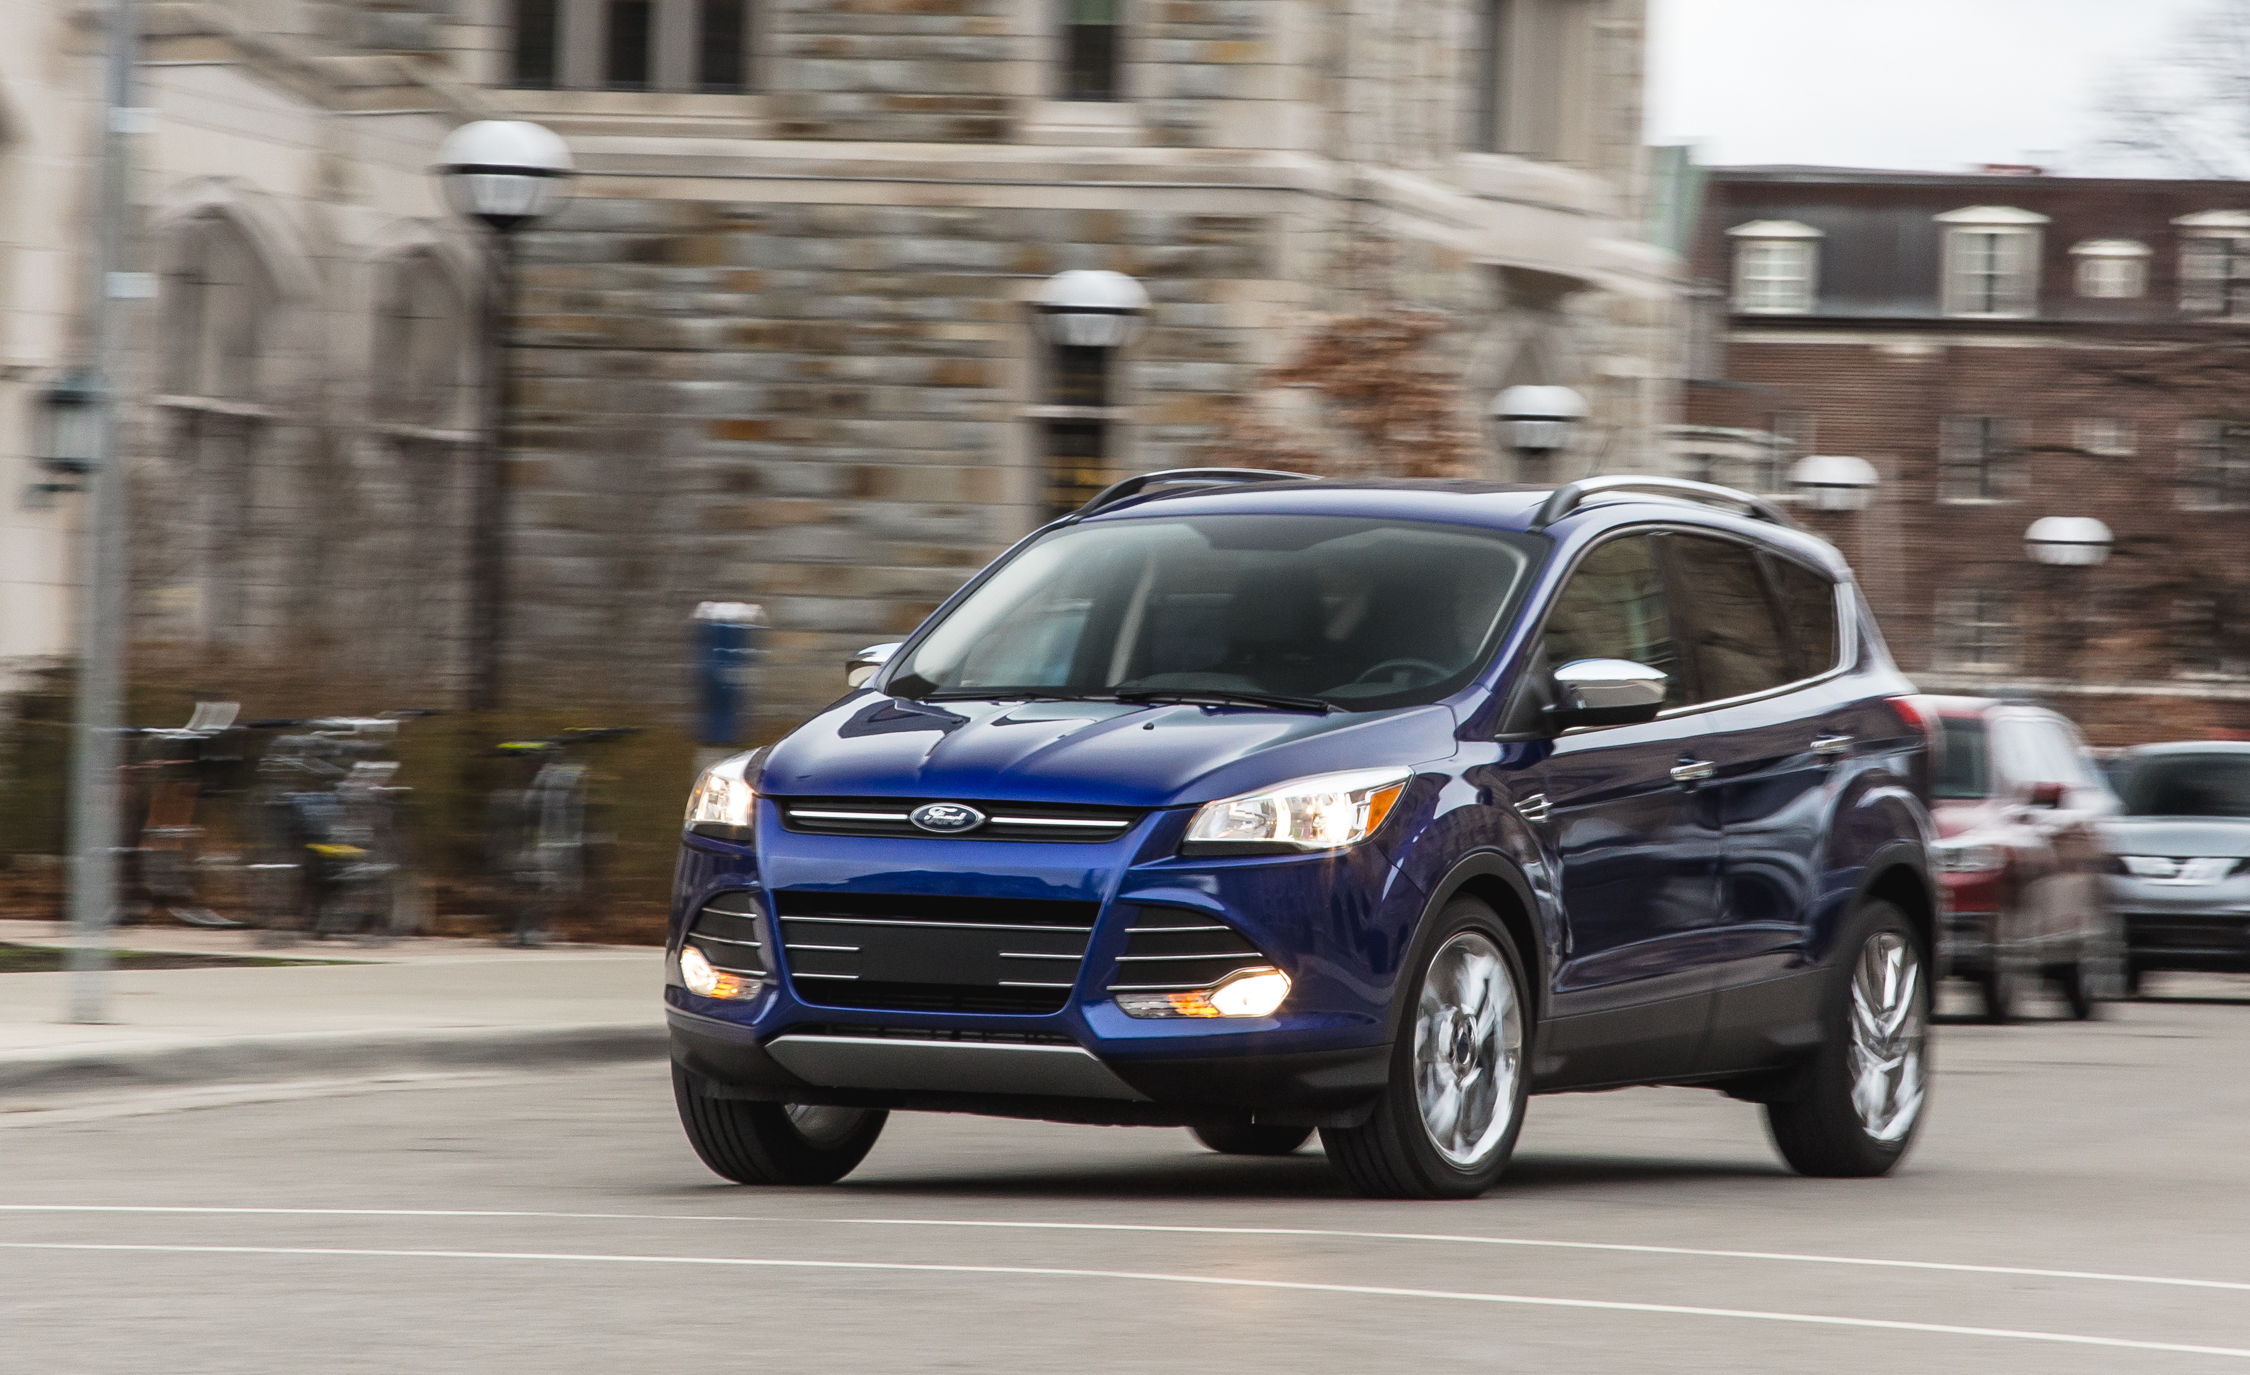 2016 Ford Escape 2 0L Ecoboost Review #8195 | Cars Performance